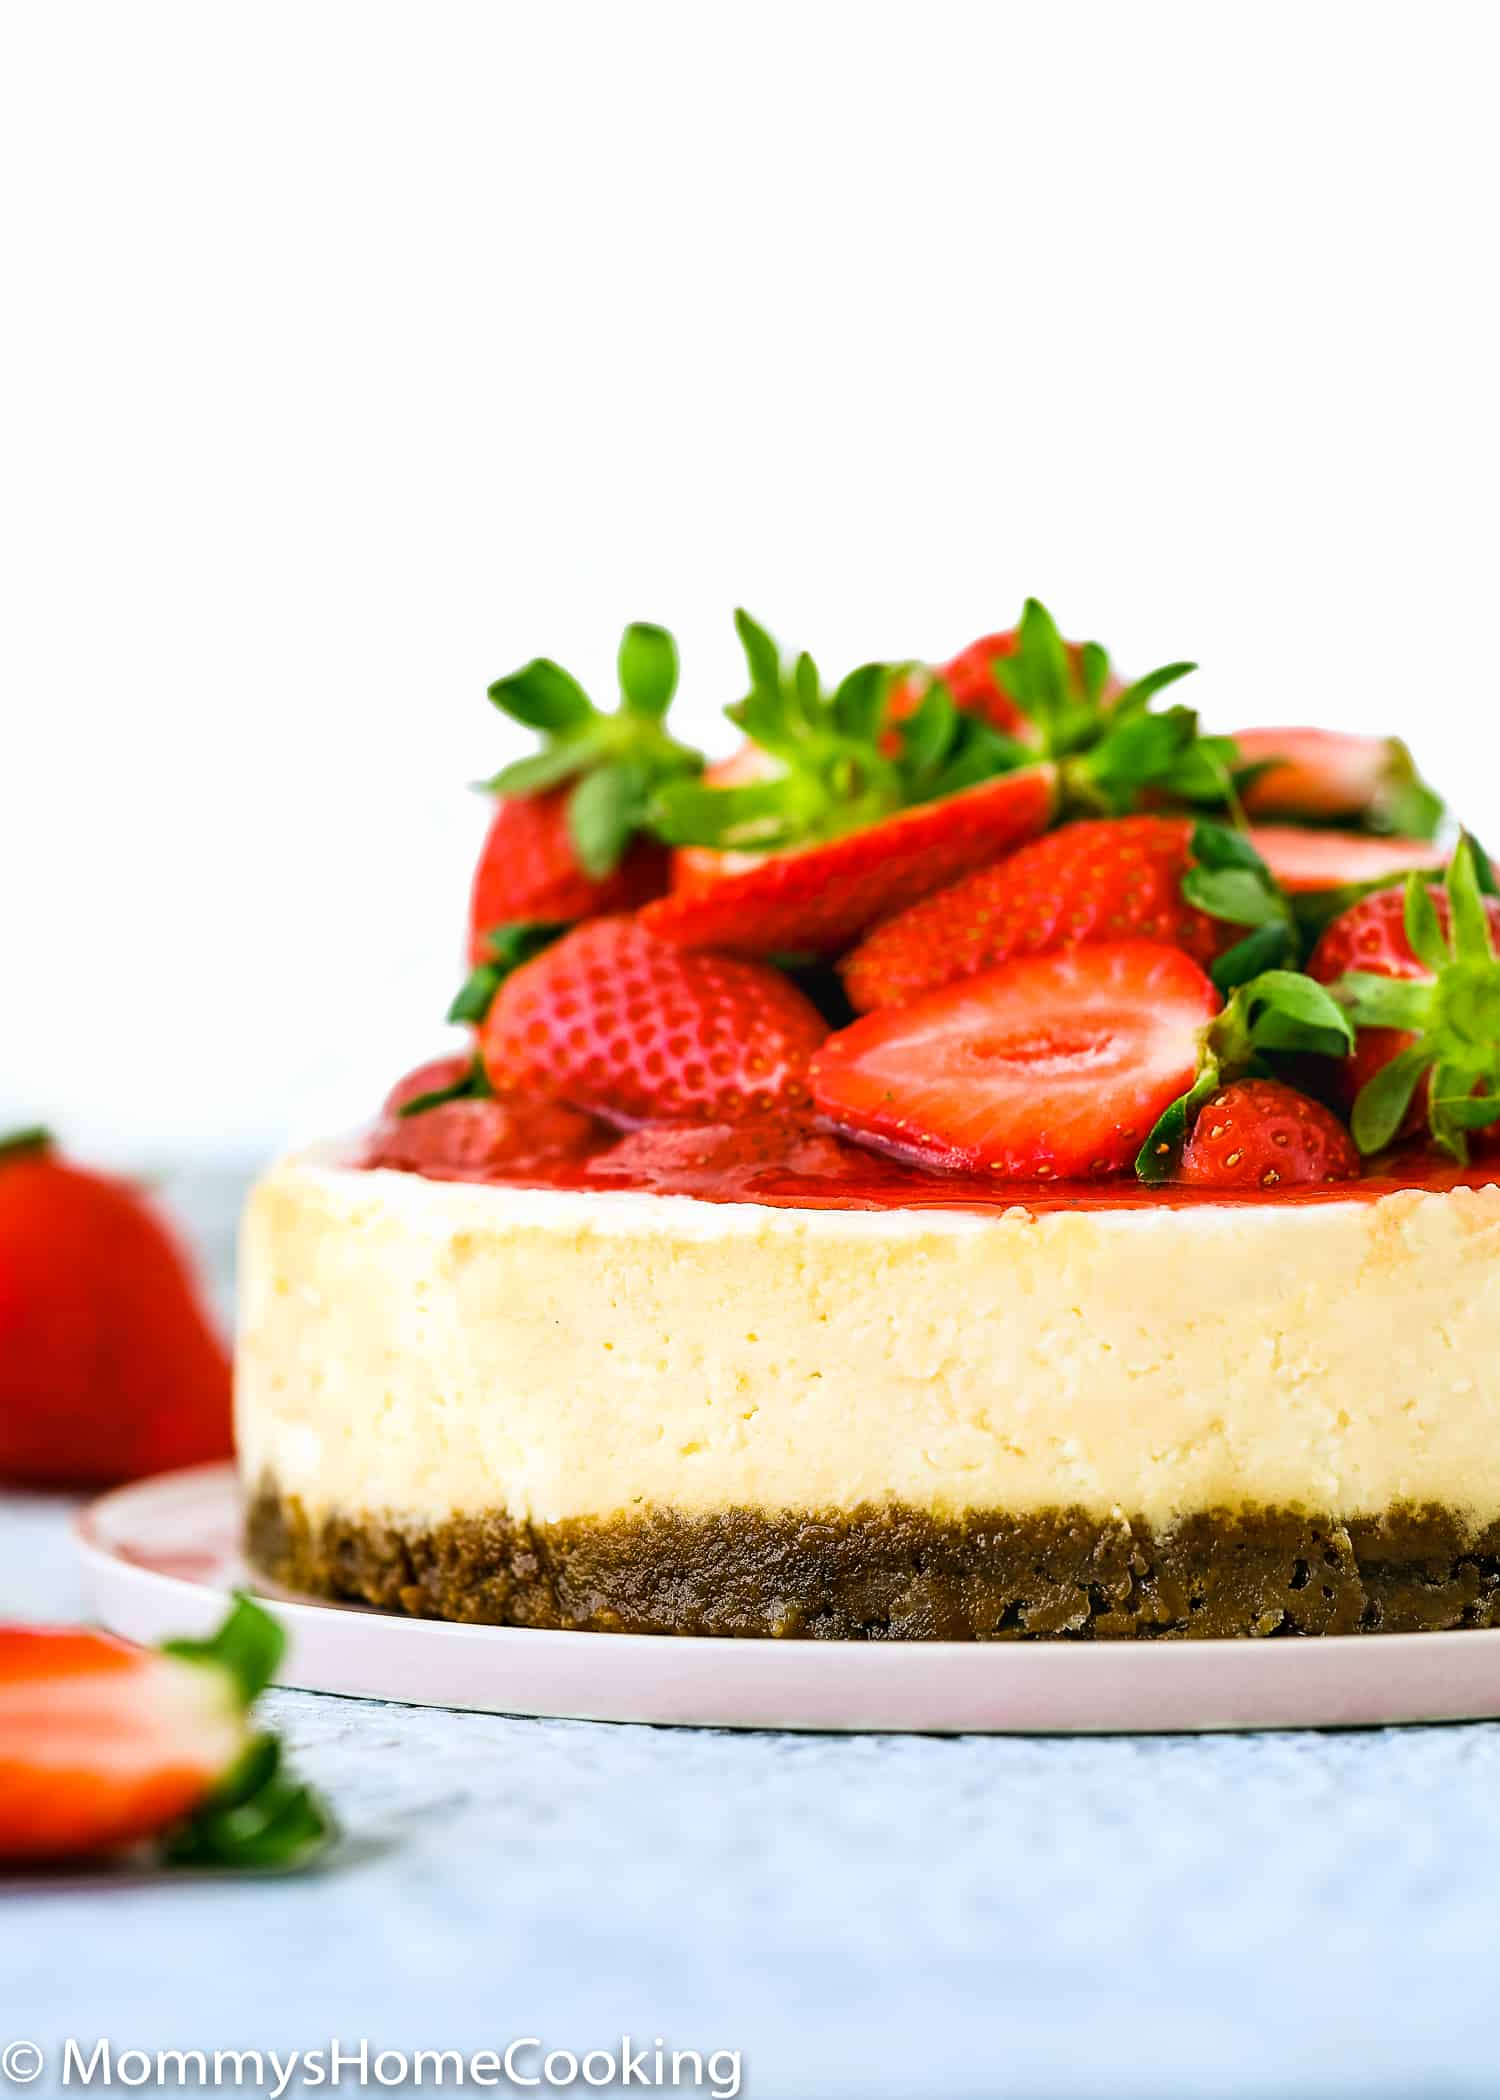 Eggless Cheesecake topped with strawberry sauce/topping and fresh strawberries